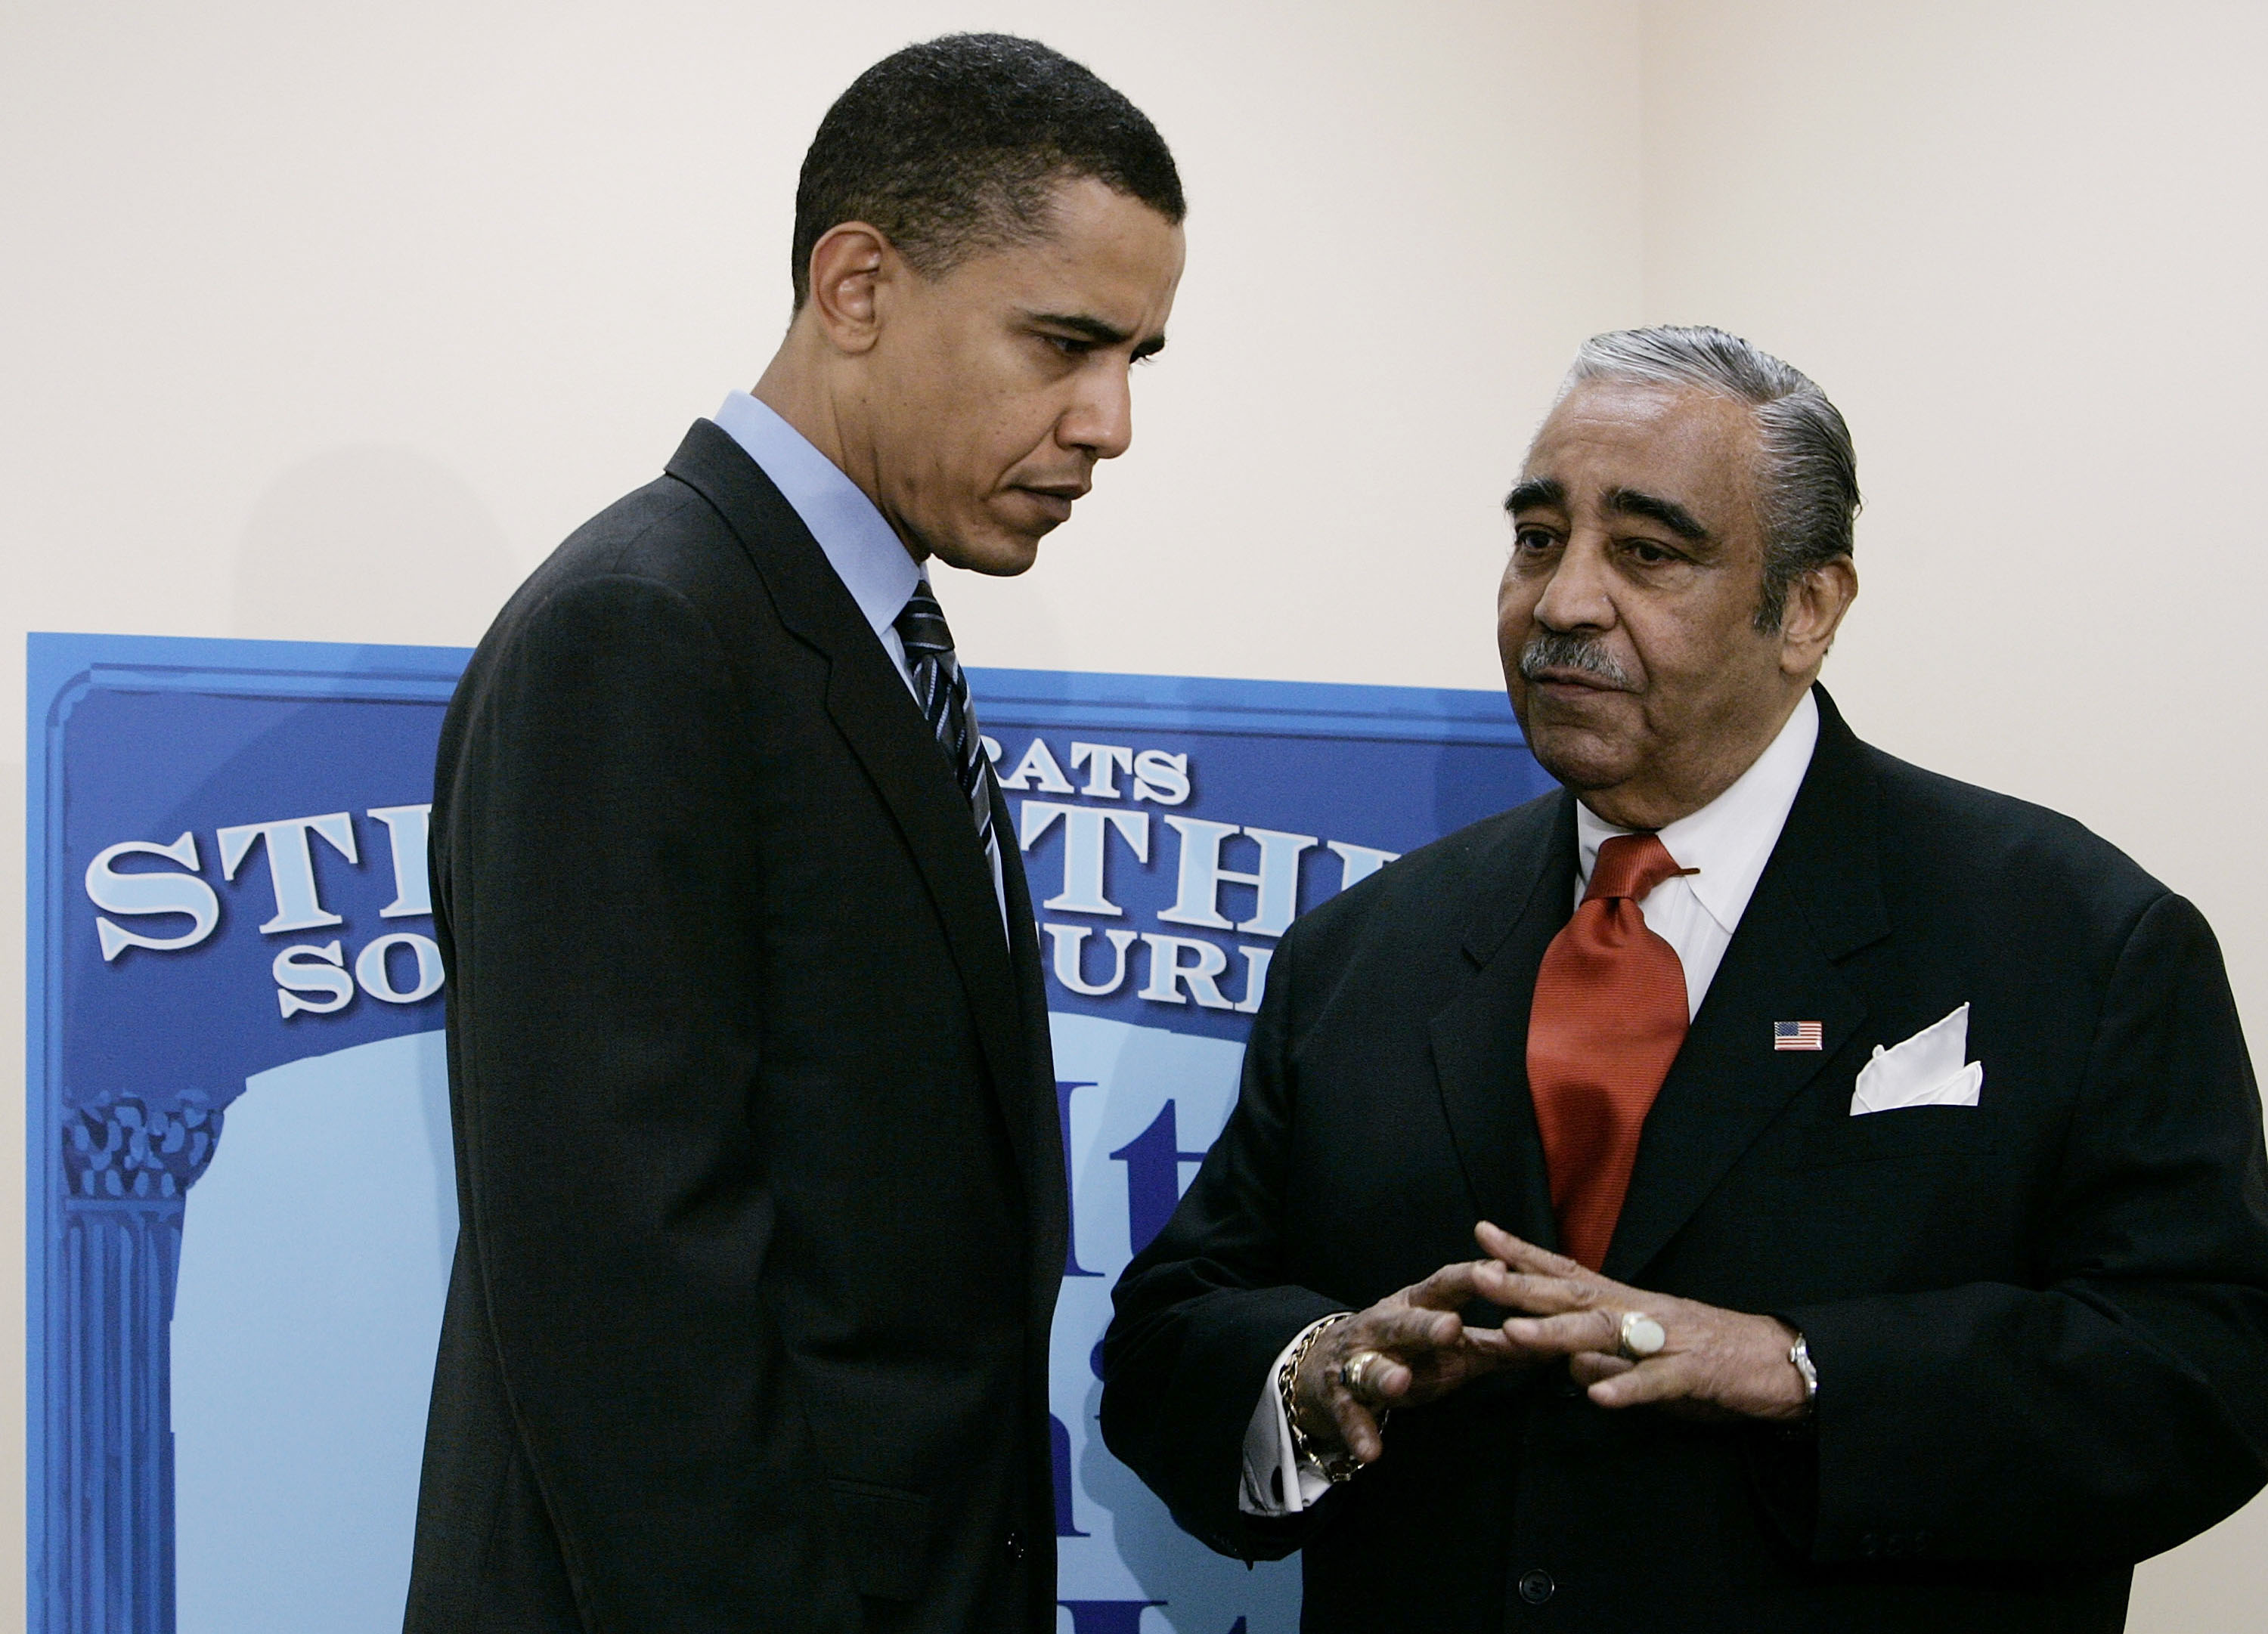 Sen. Barack Obama (D-IL) speaks with Rep. Charles Rangel (D-NY) before the start of a news conference in Washington, March 10, 2005.